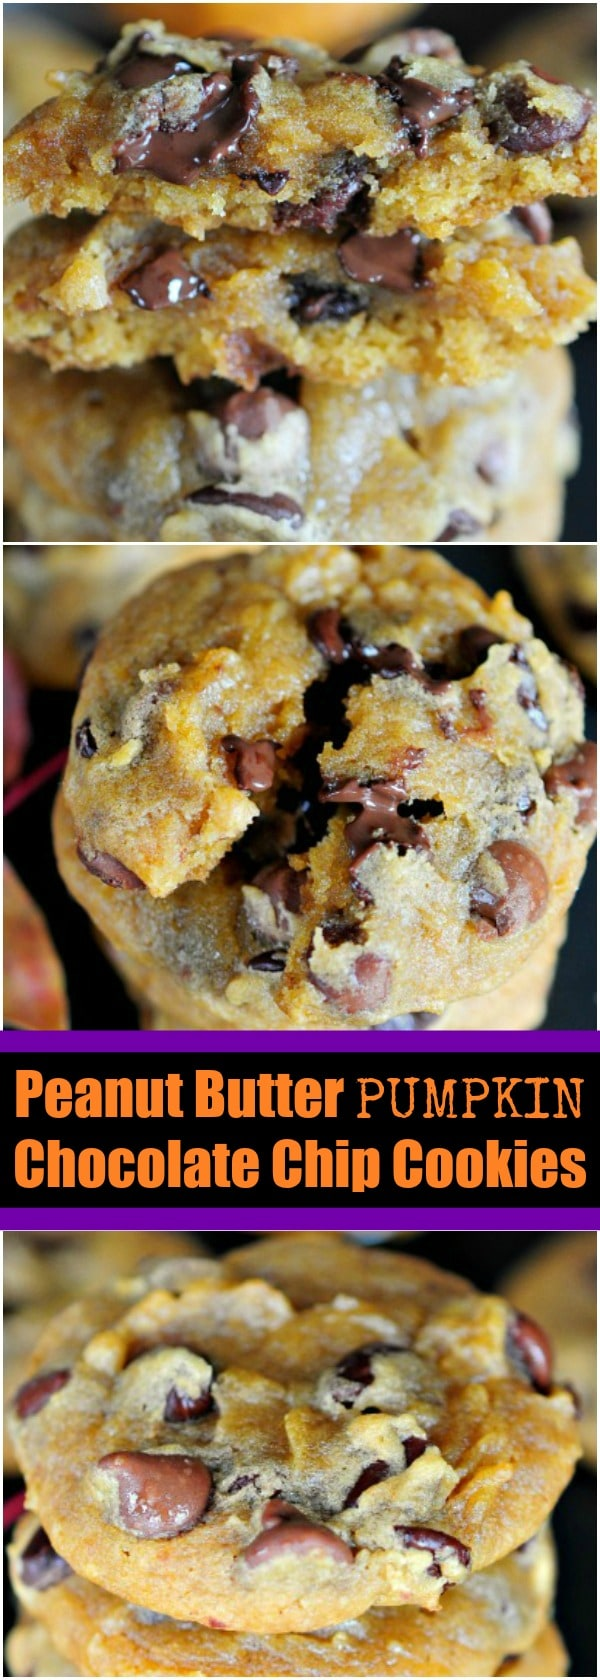 Peanut Butter Pumpkin Chocolate Chip Cookies